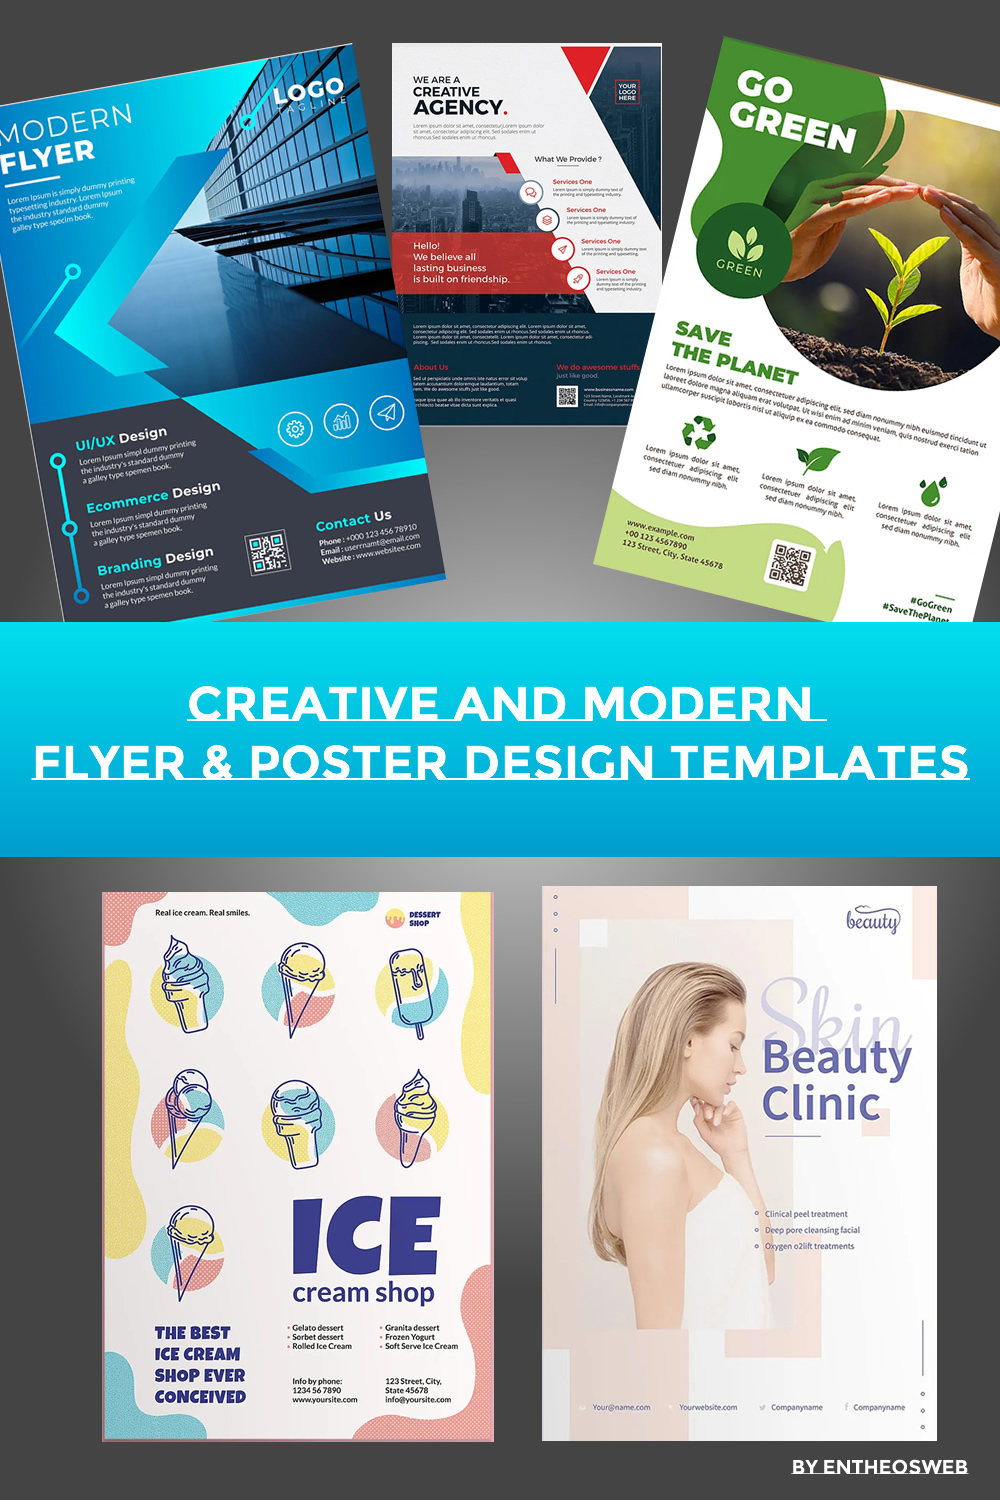 Creative and Modern Flyer & Poster Design Templates